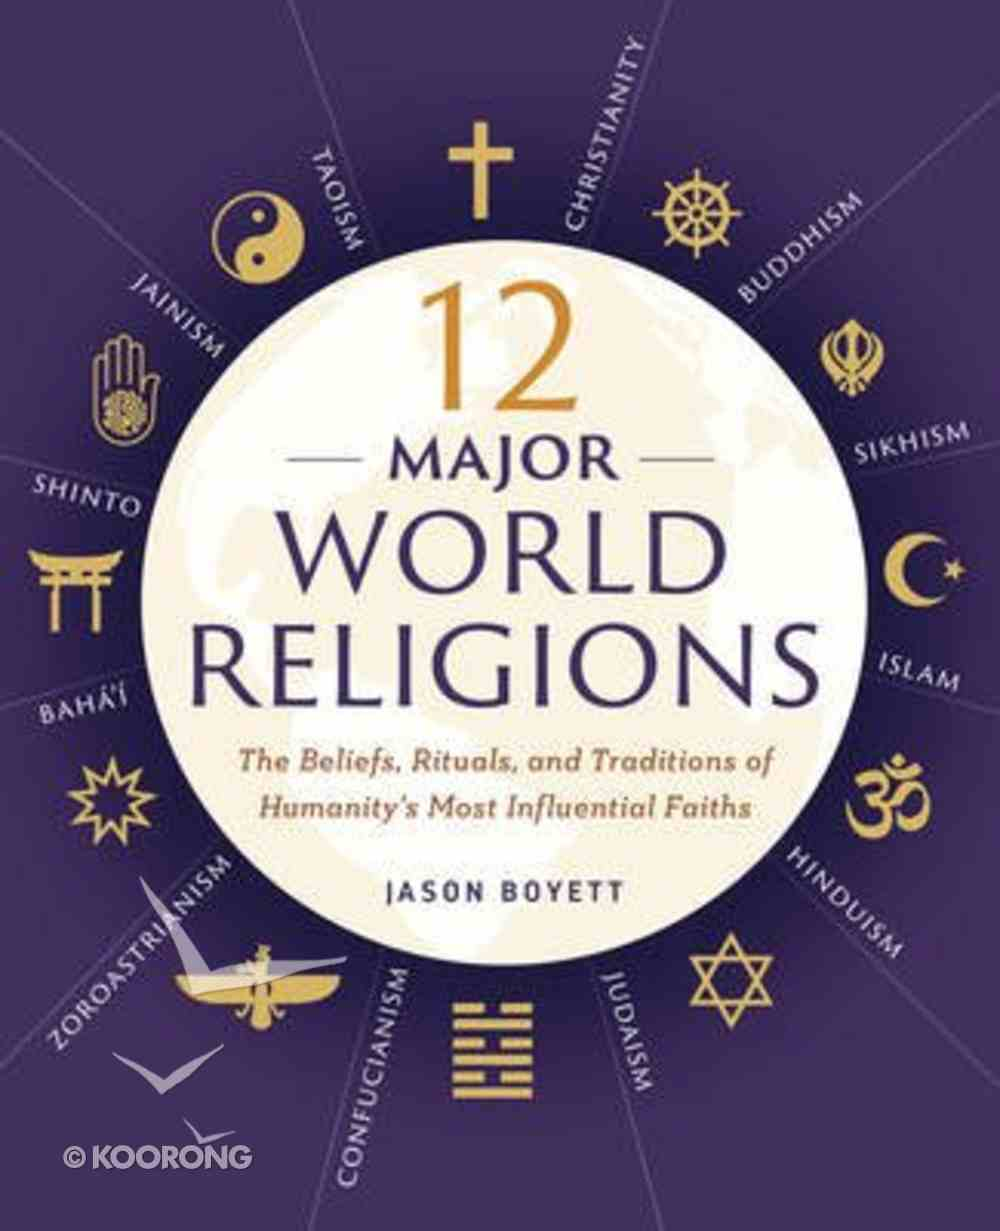 12 Major World Religions: The Beliefs, Rituals and Traditions of Humanity's Most Influentials Faiths Paperback